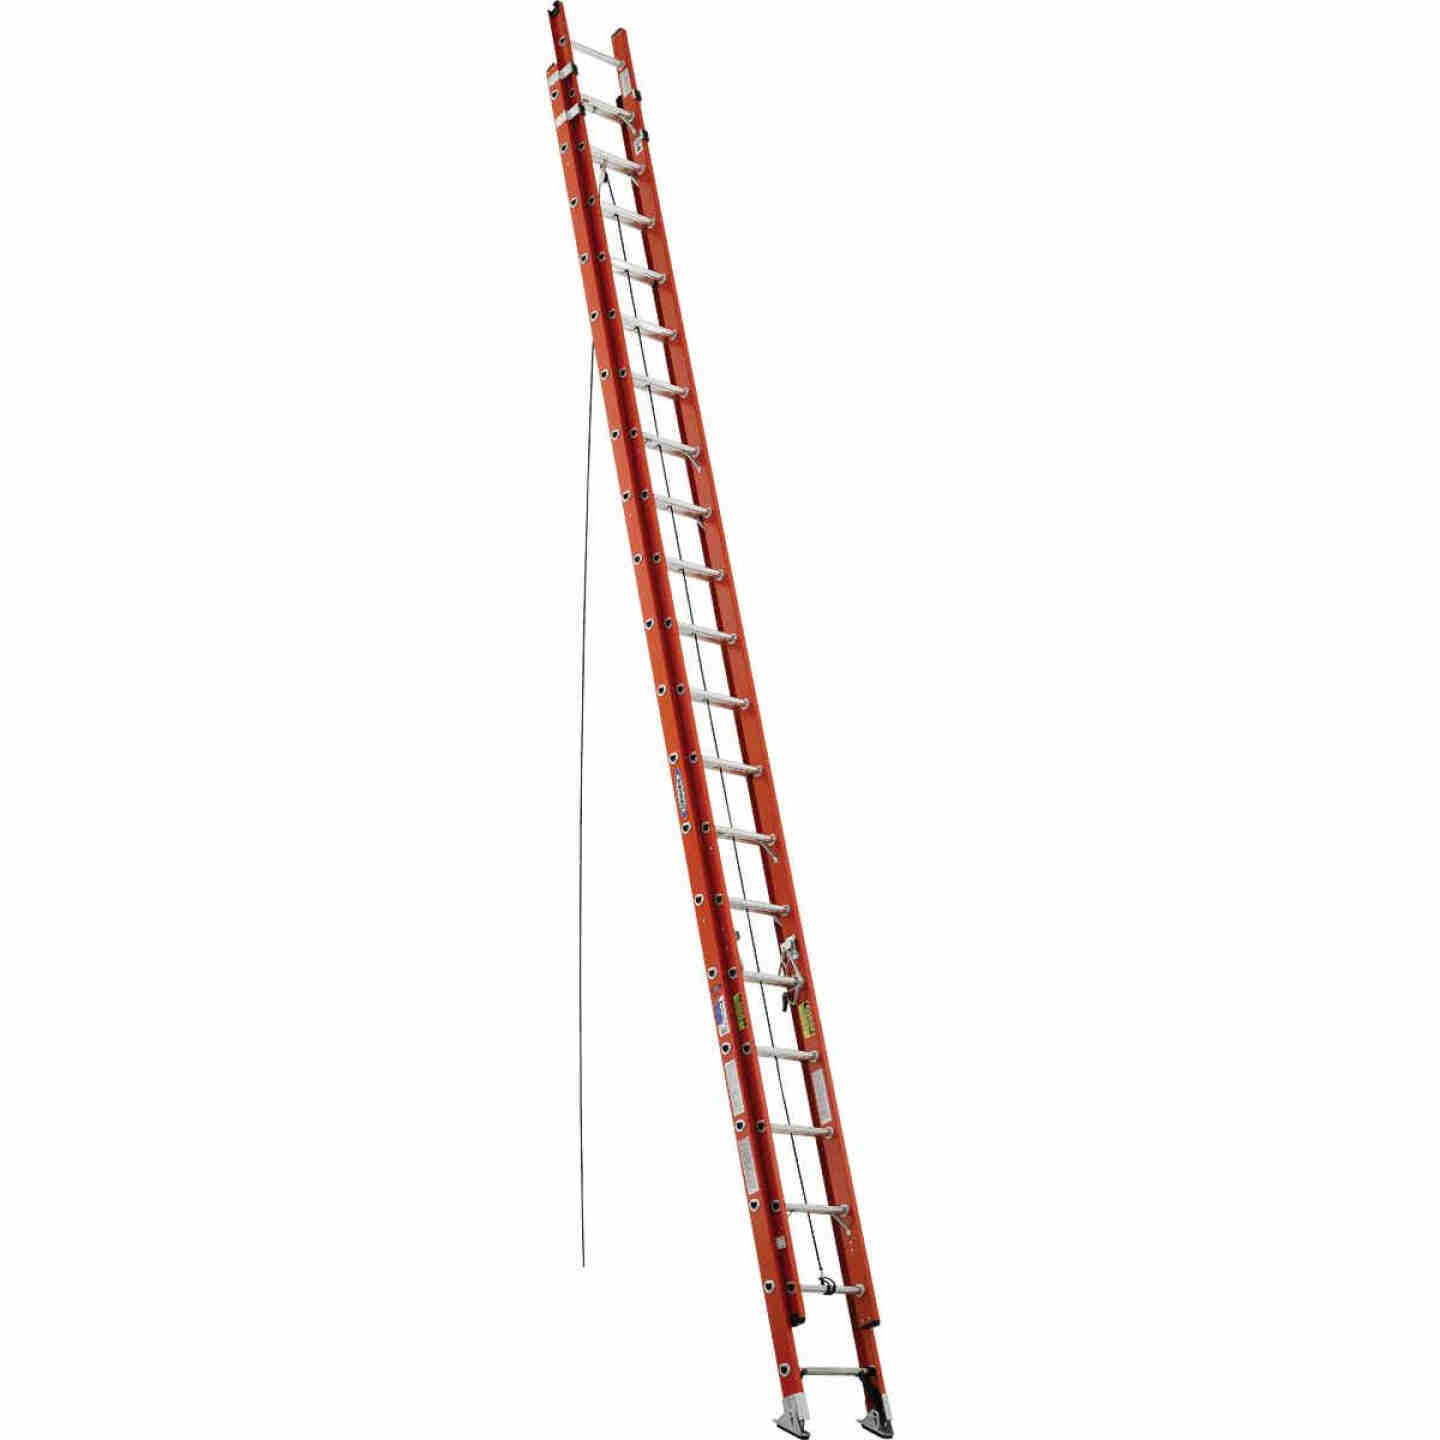 Werner 40 Ft. Fiberglass Extension Ladder with 300 Lb. Load Capacity Type IA Duty Rating Image 1